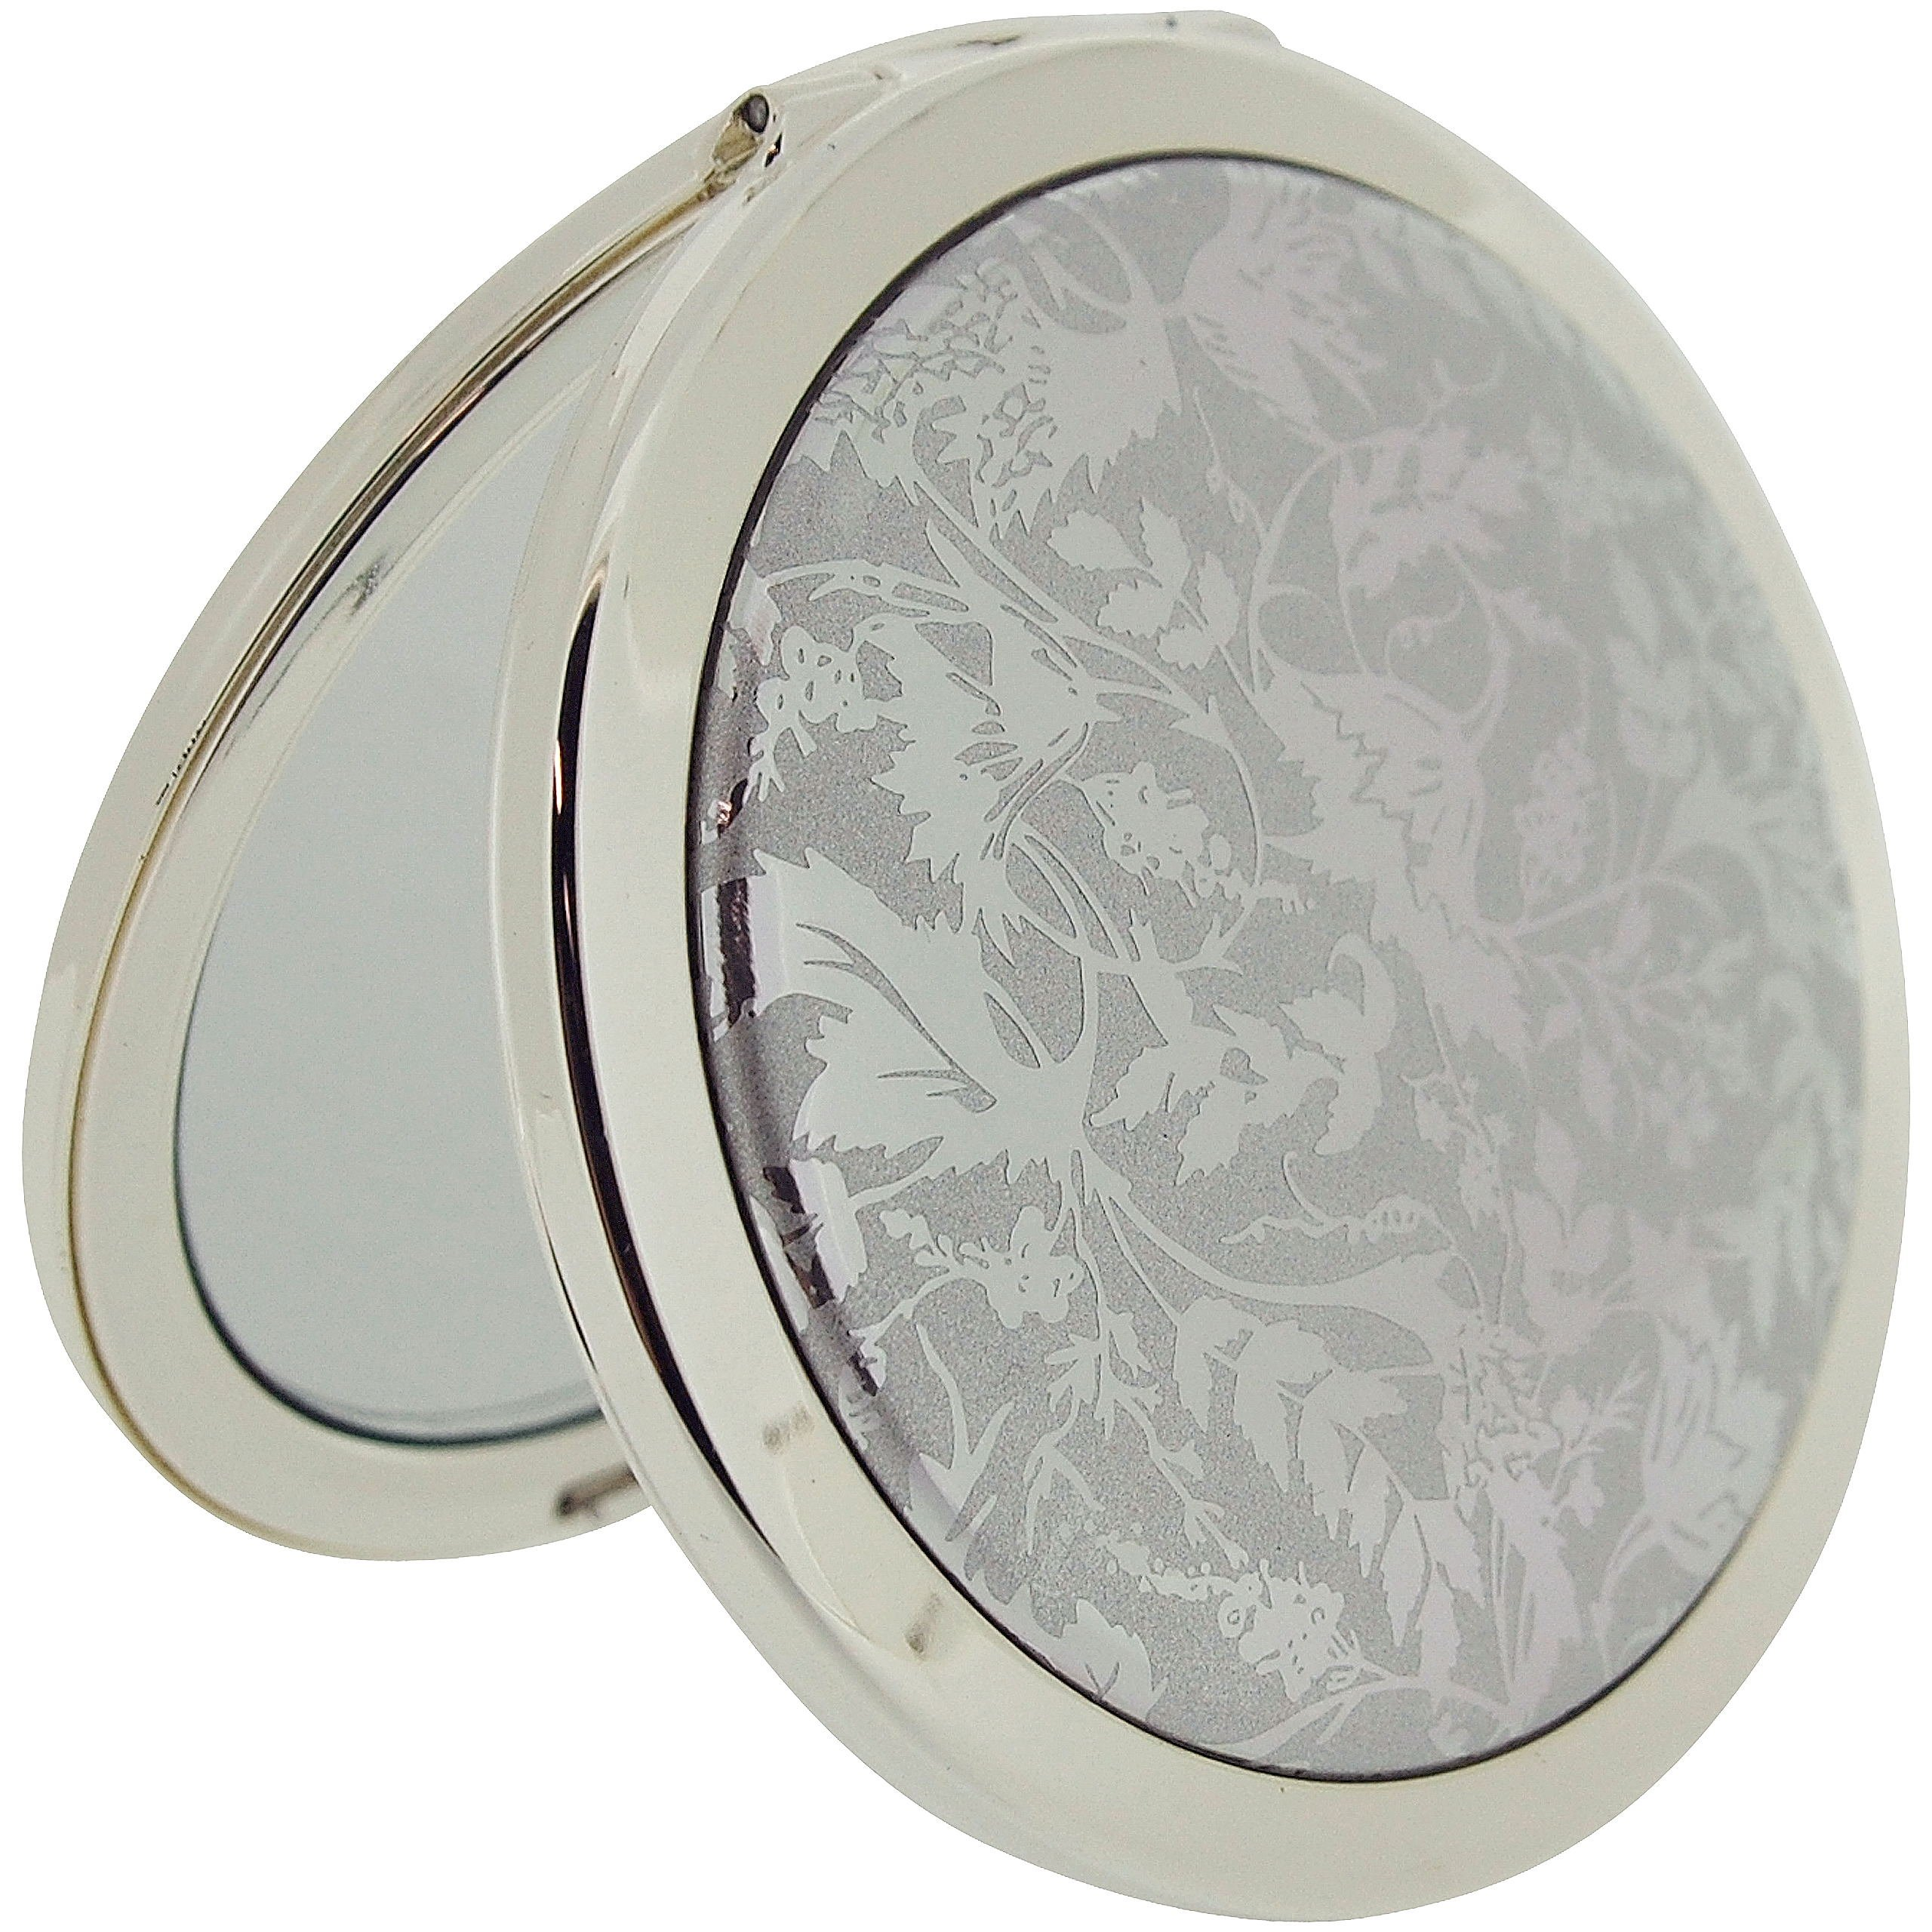 Stratton Compact Mirror Ladies Heritage Collection Double Pocket Mirror 3x Magnification Silvertone Design ST1129